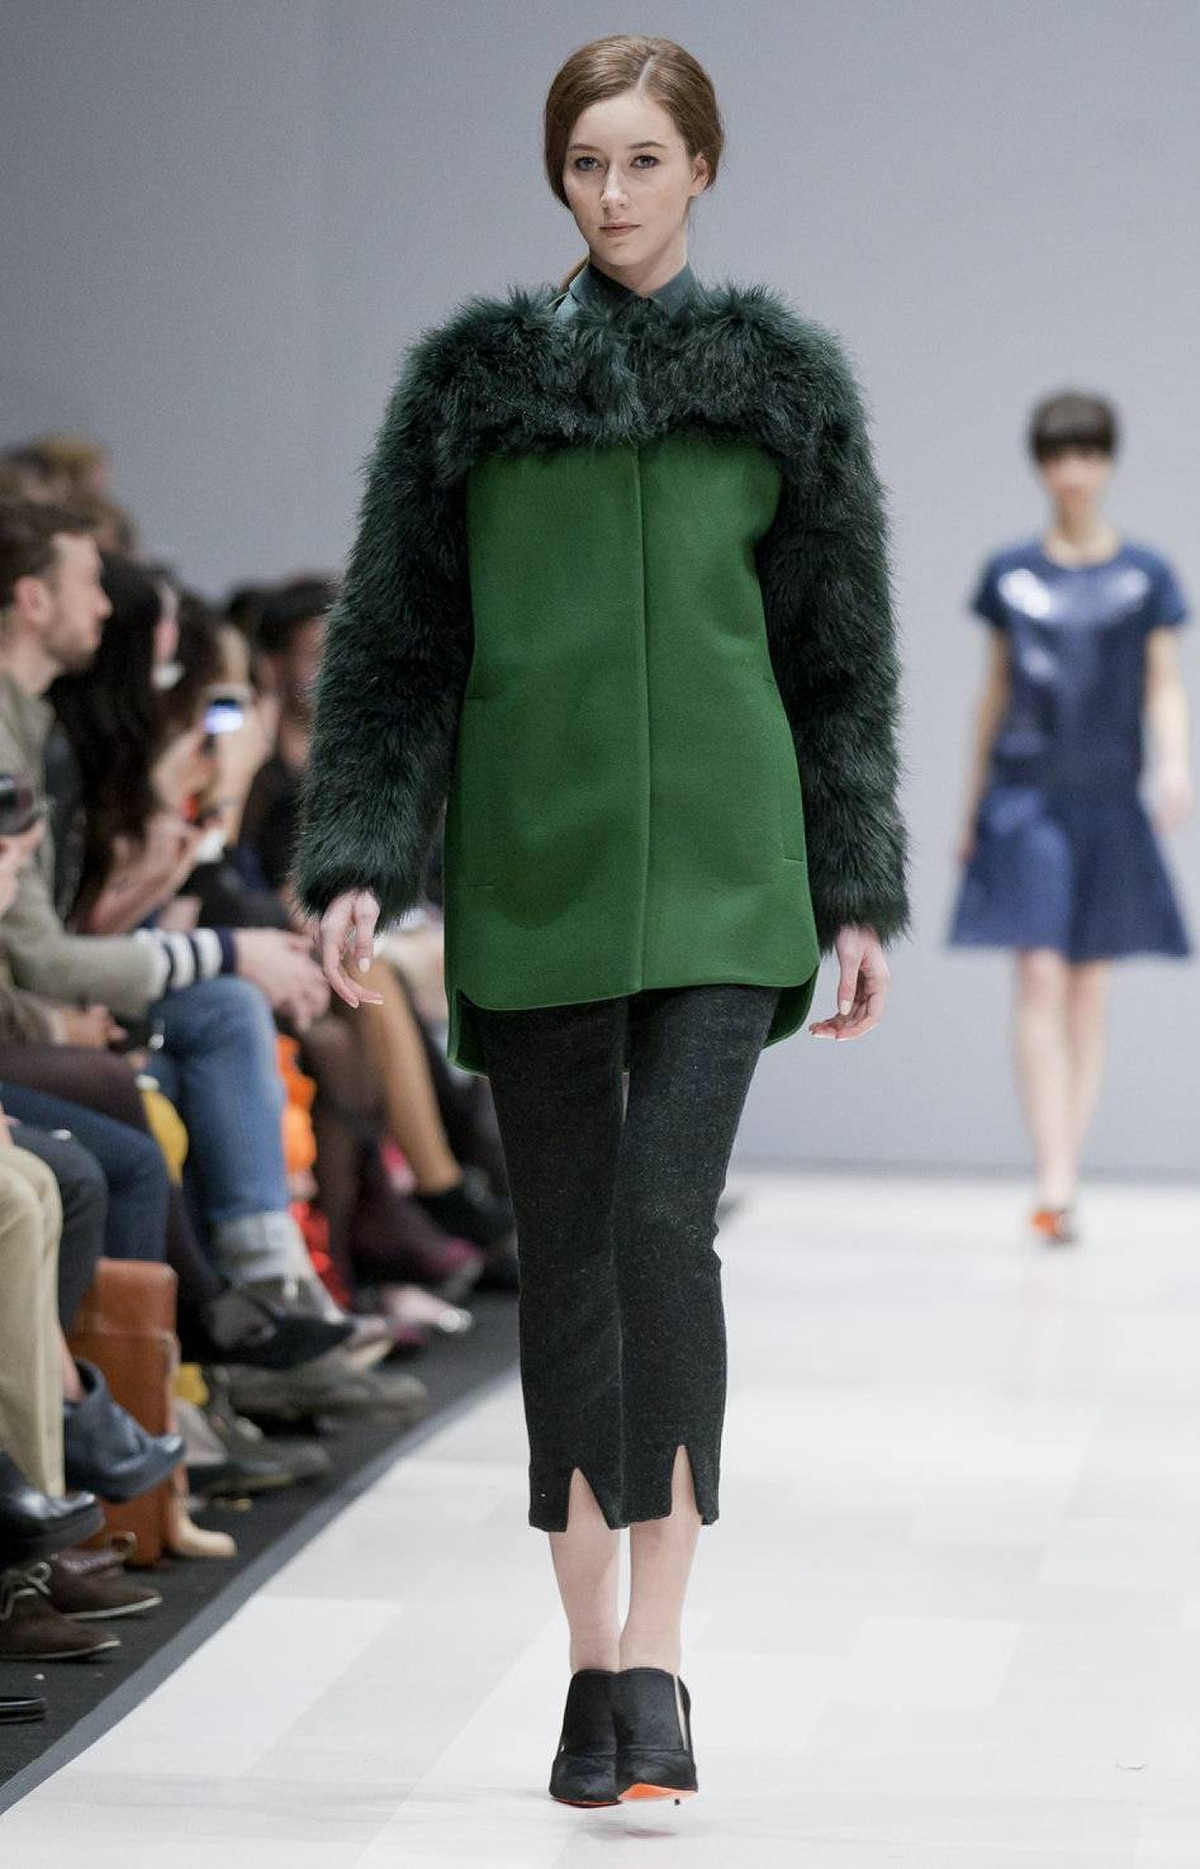 Many Toronto Fashion Week designers played with fur, both real and faux, this season. At Joe, the faux stuff appeared most effectively in the form of big, lush sleeves on an otherwise sleek wool coat.